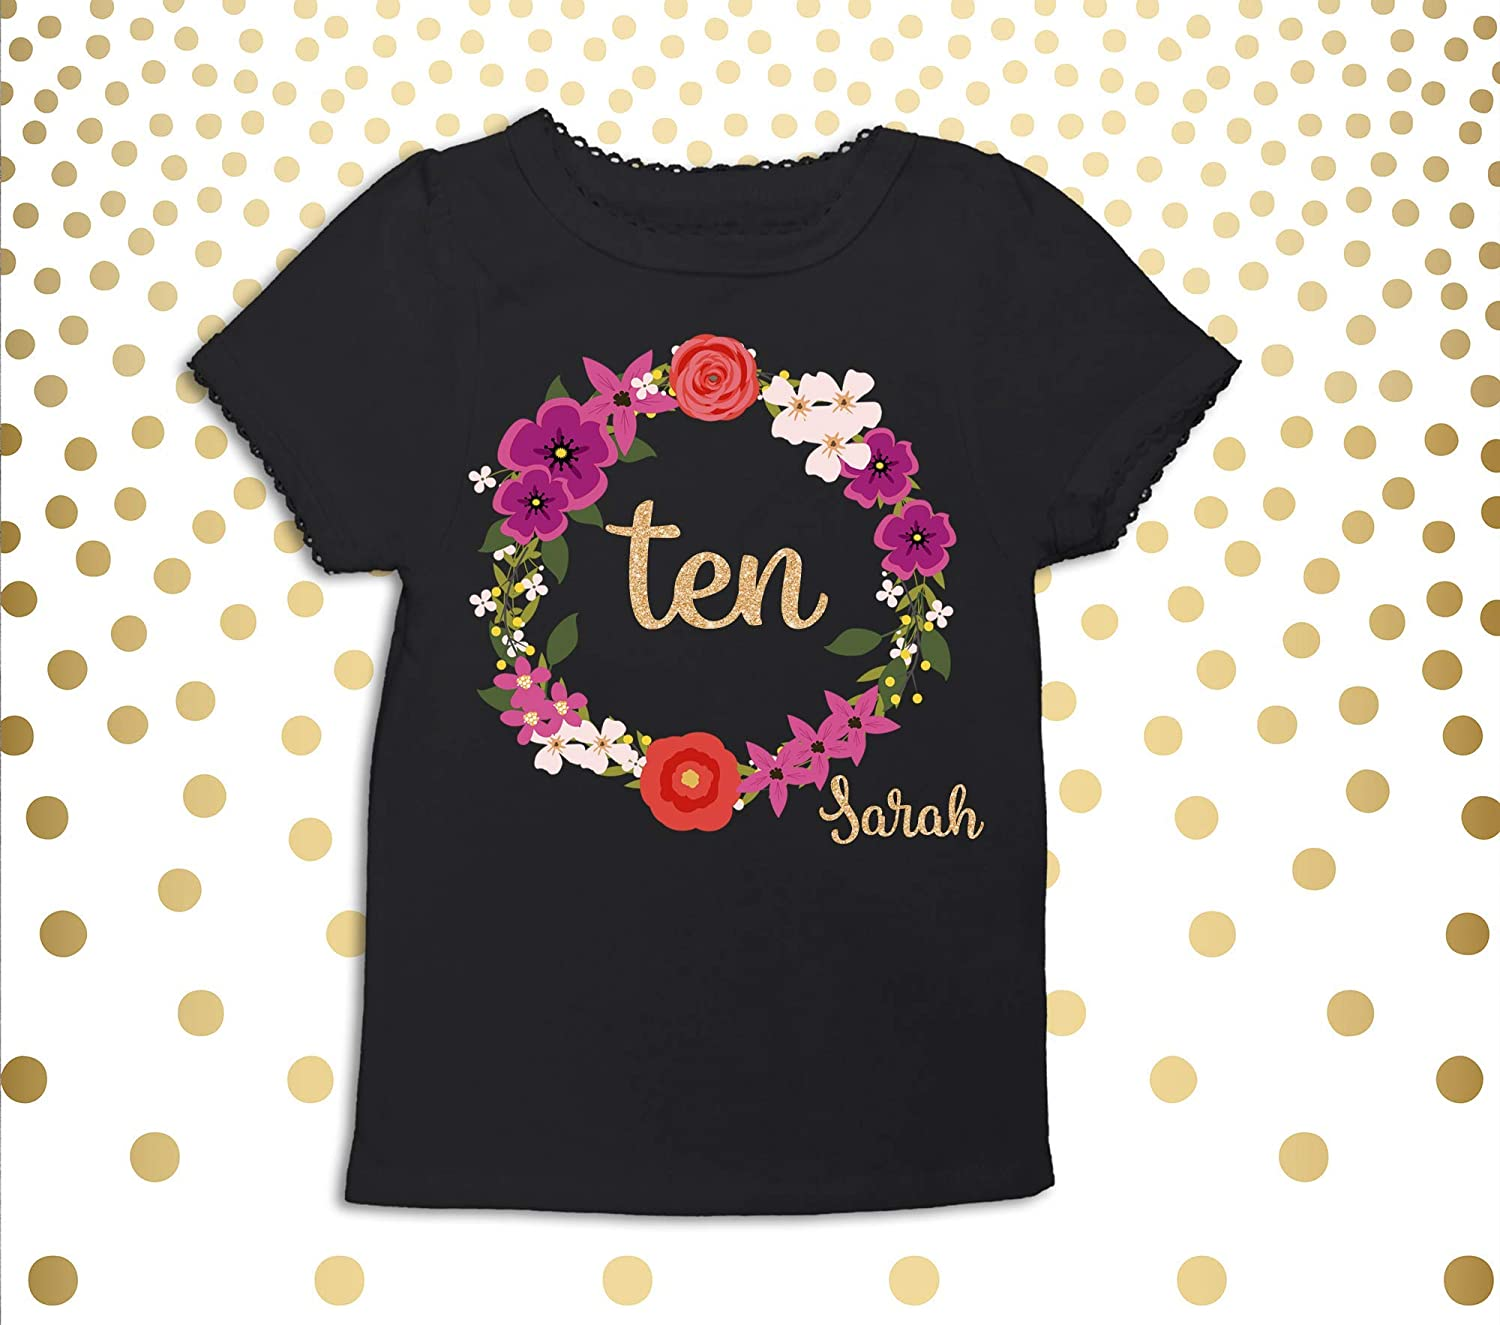 Amazon Girls 10th Birthday Outfit Ten Shirt Nine 10 Year Old Party Bday Handmade